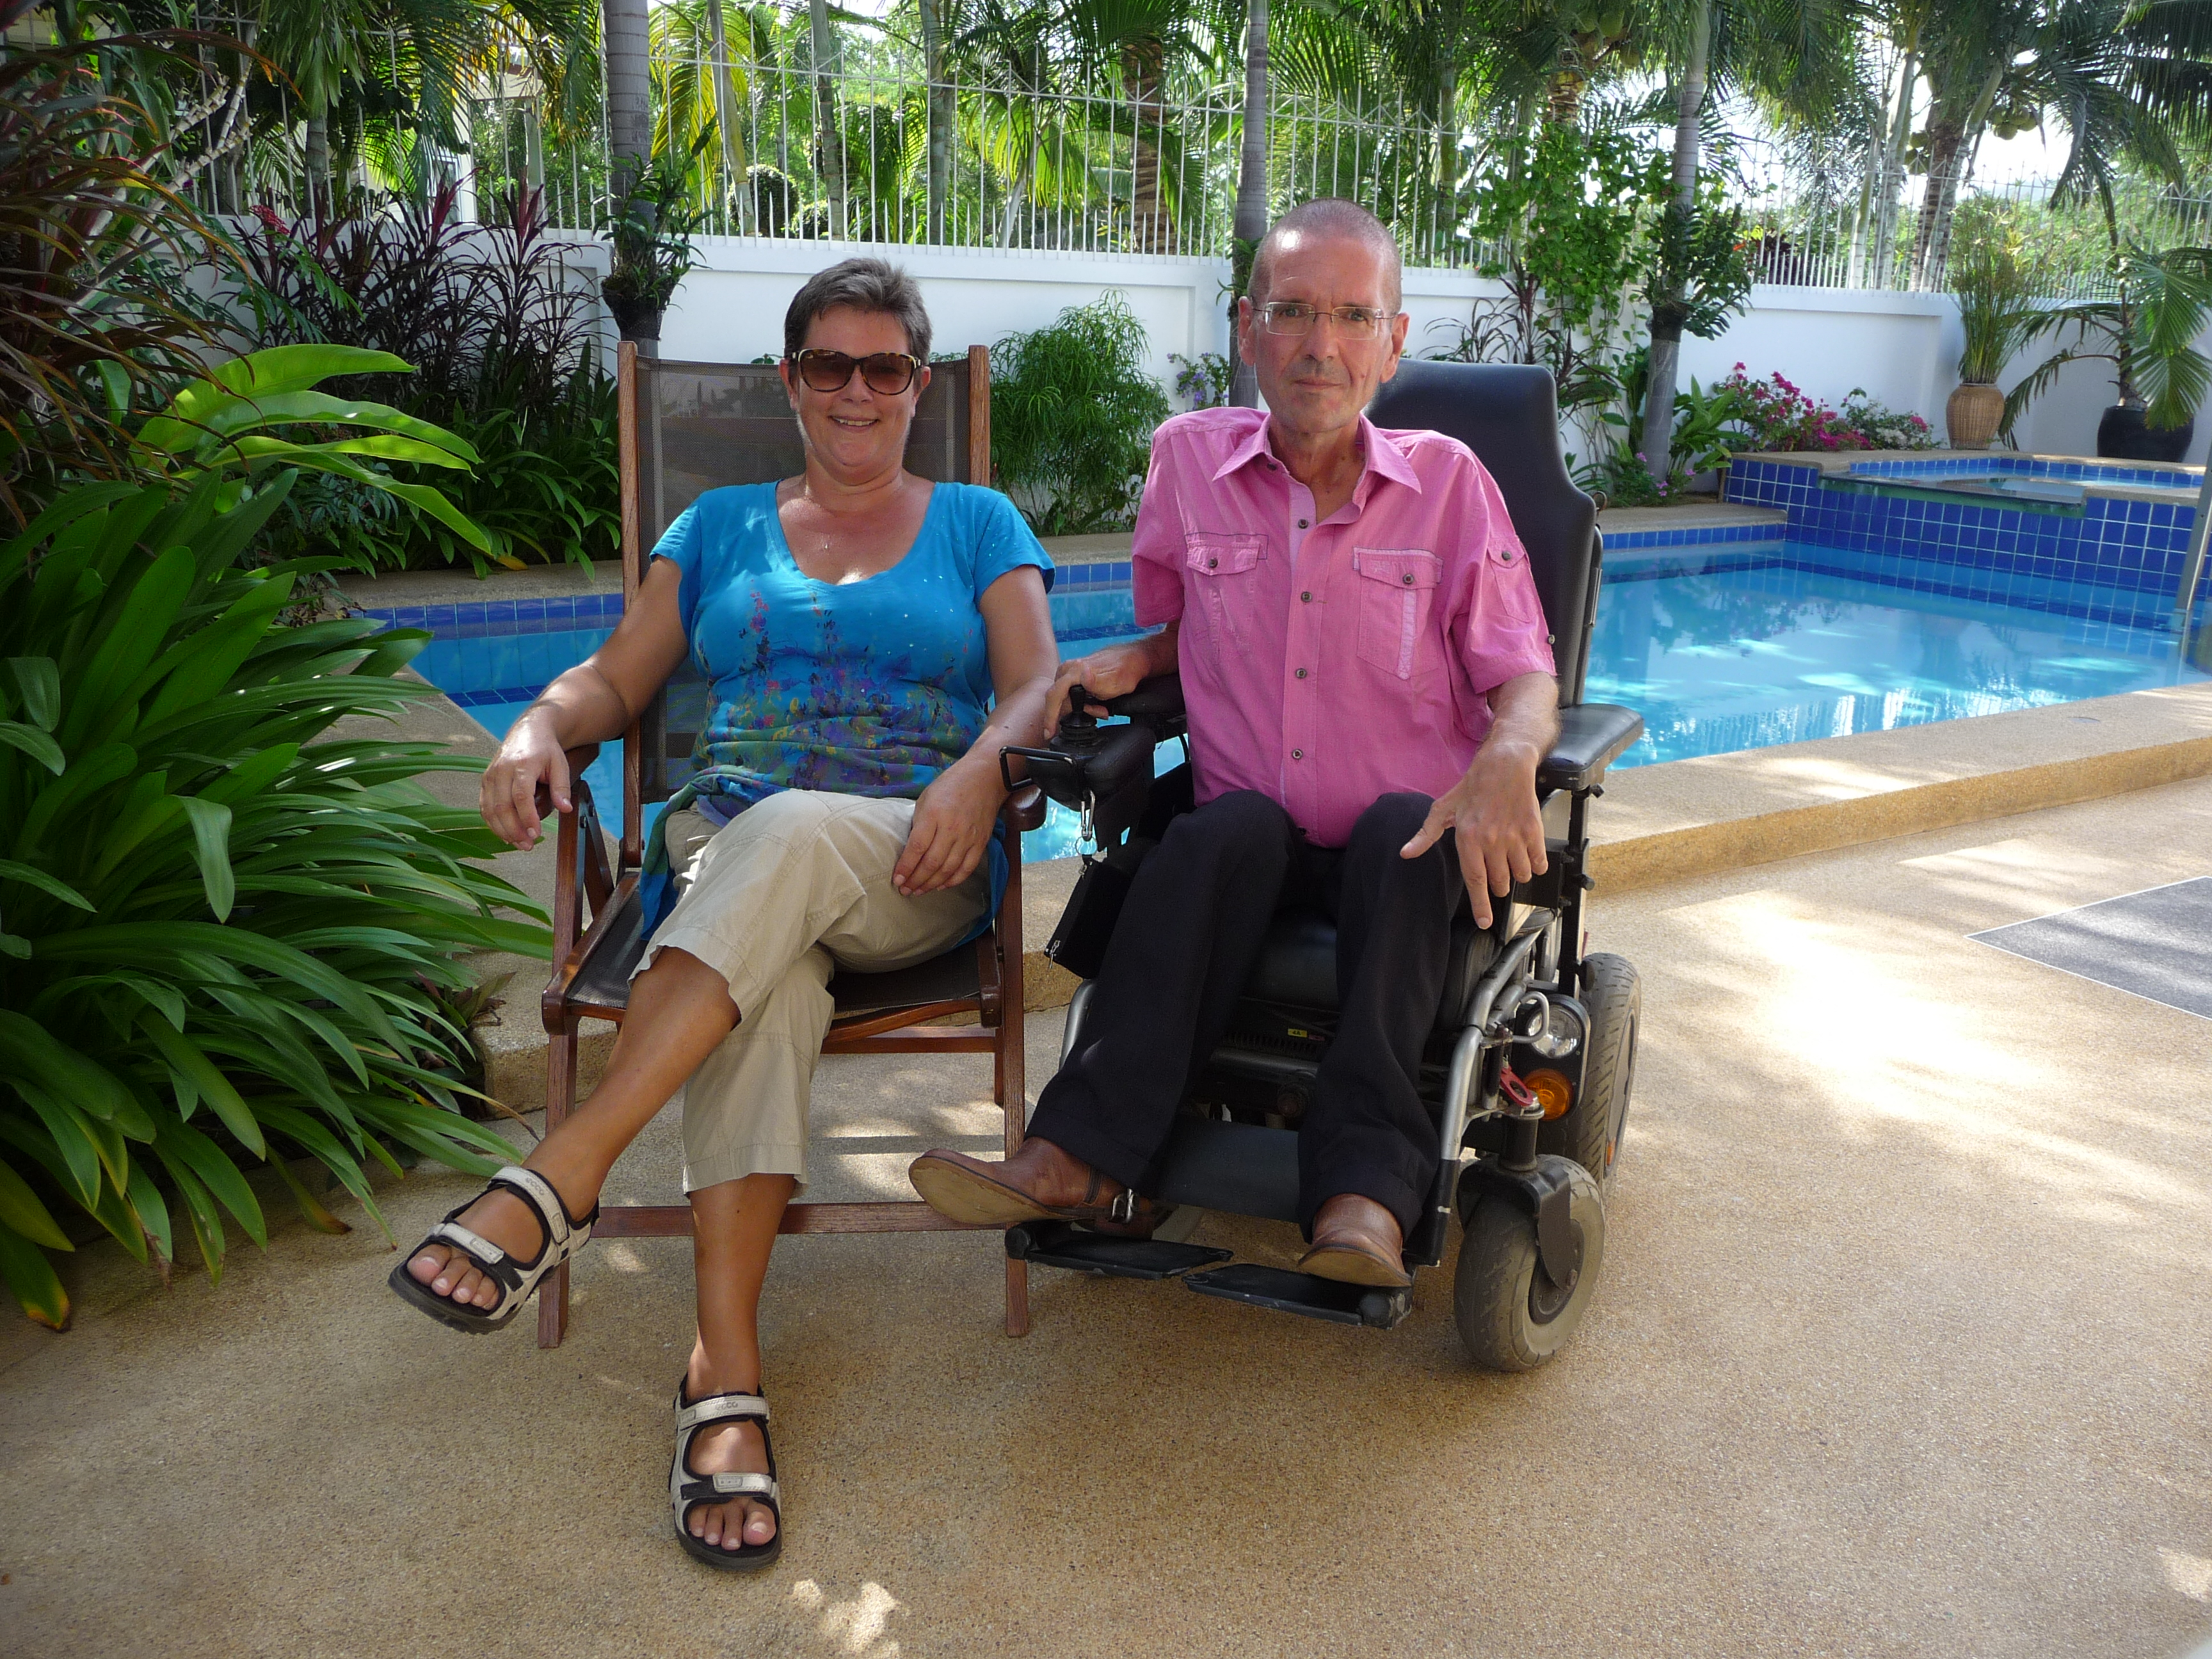 Vacationing With a Disability—the Small Company That Provides Big Possibilities